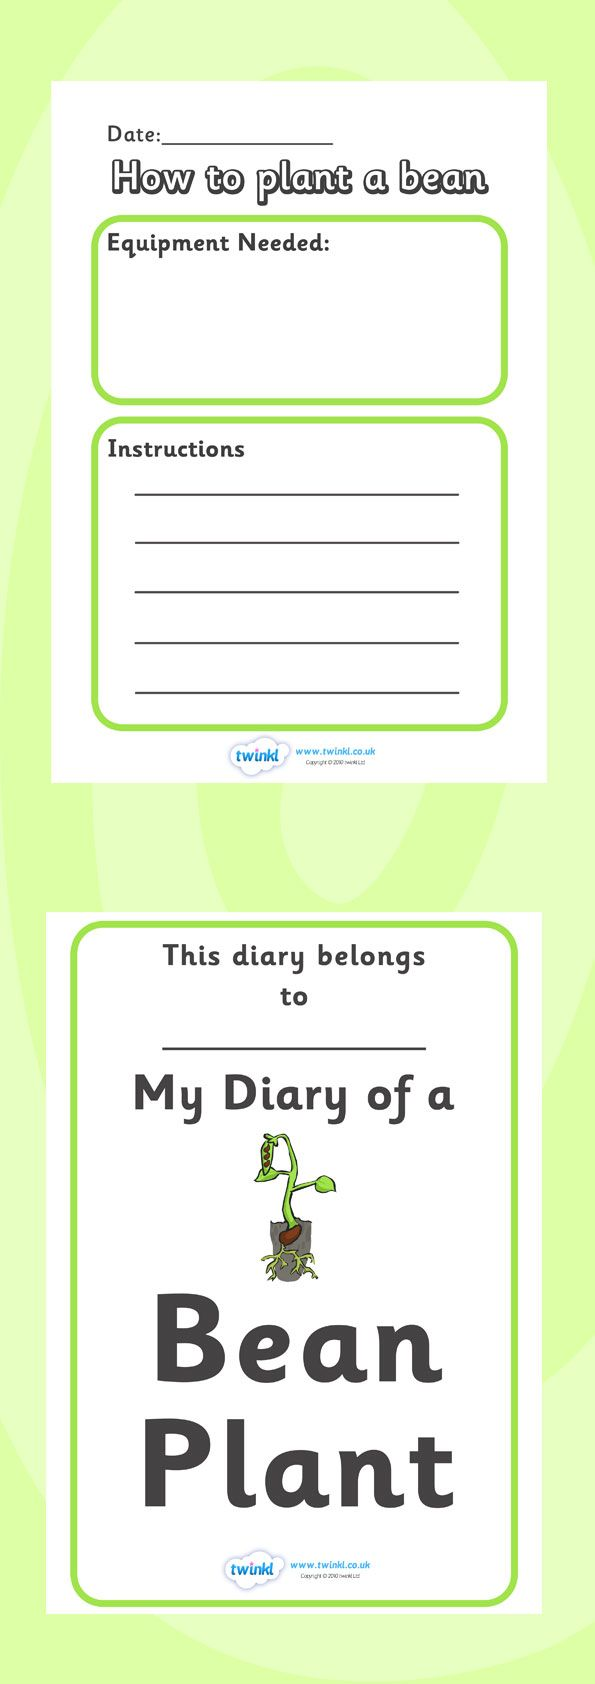 Twinkl Resources >> My Diary of a Bean Plant >> Classroom